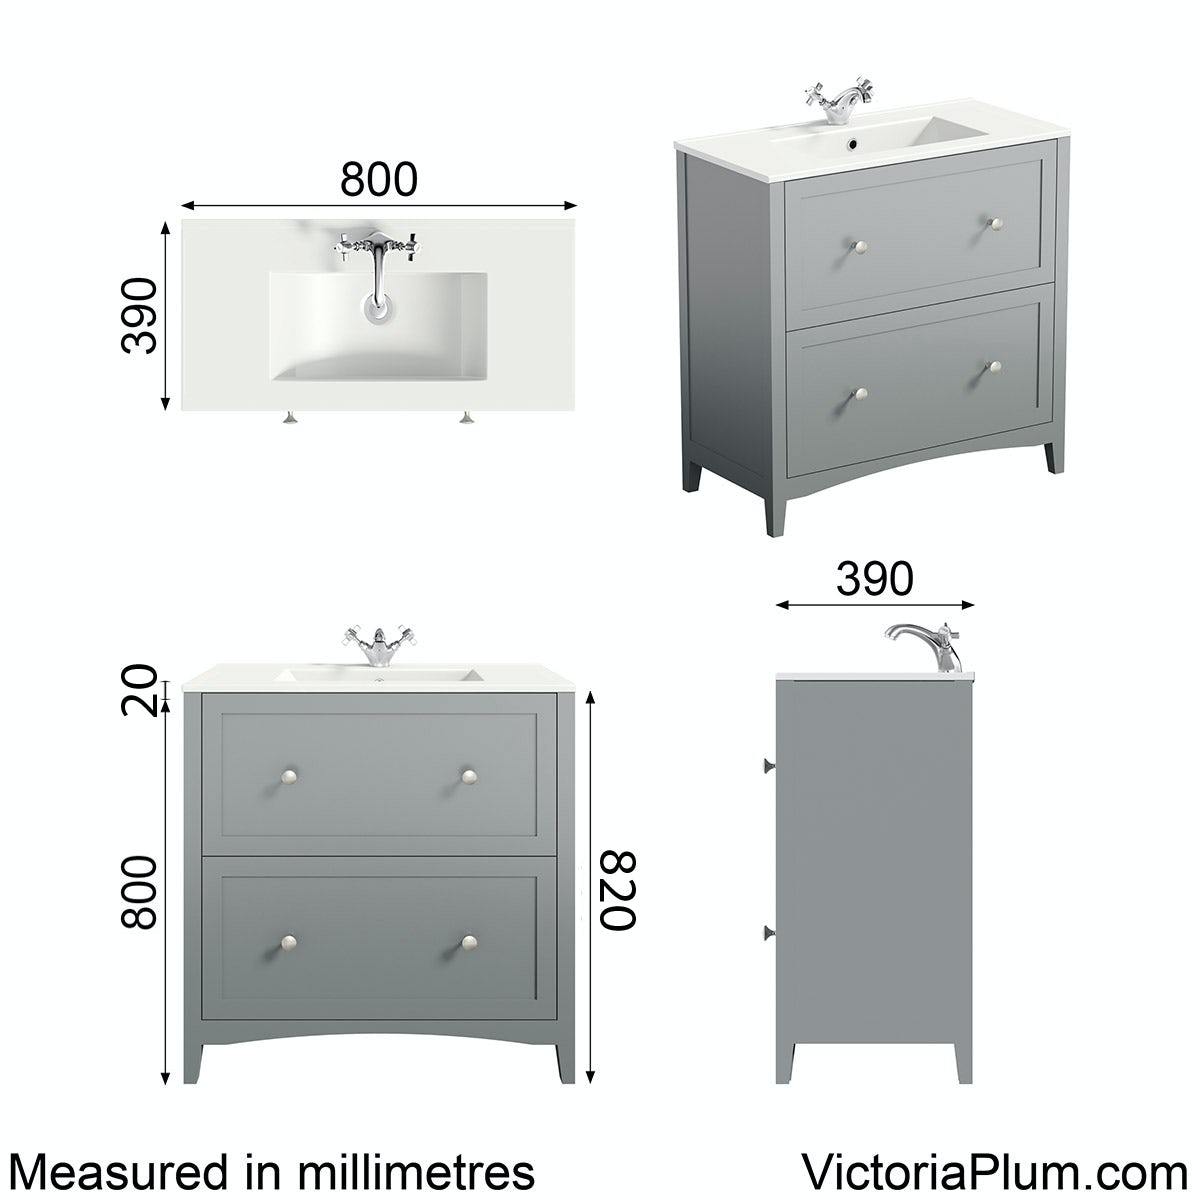 Dimensions for The Bath Co. Camberley grey vanity unit with basin 800mm